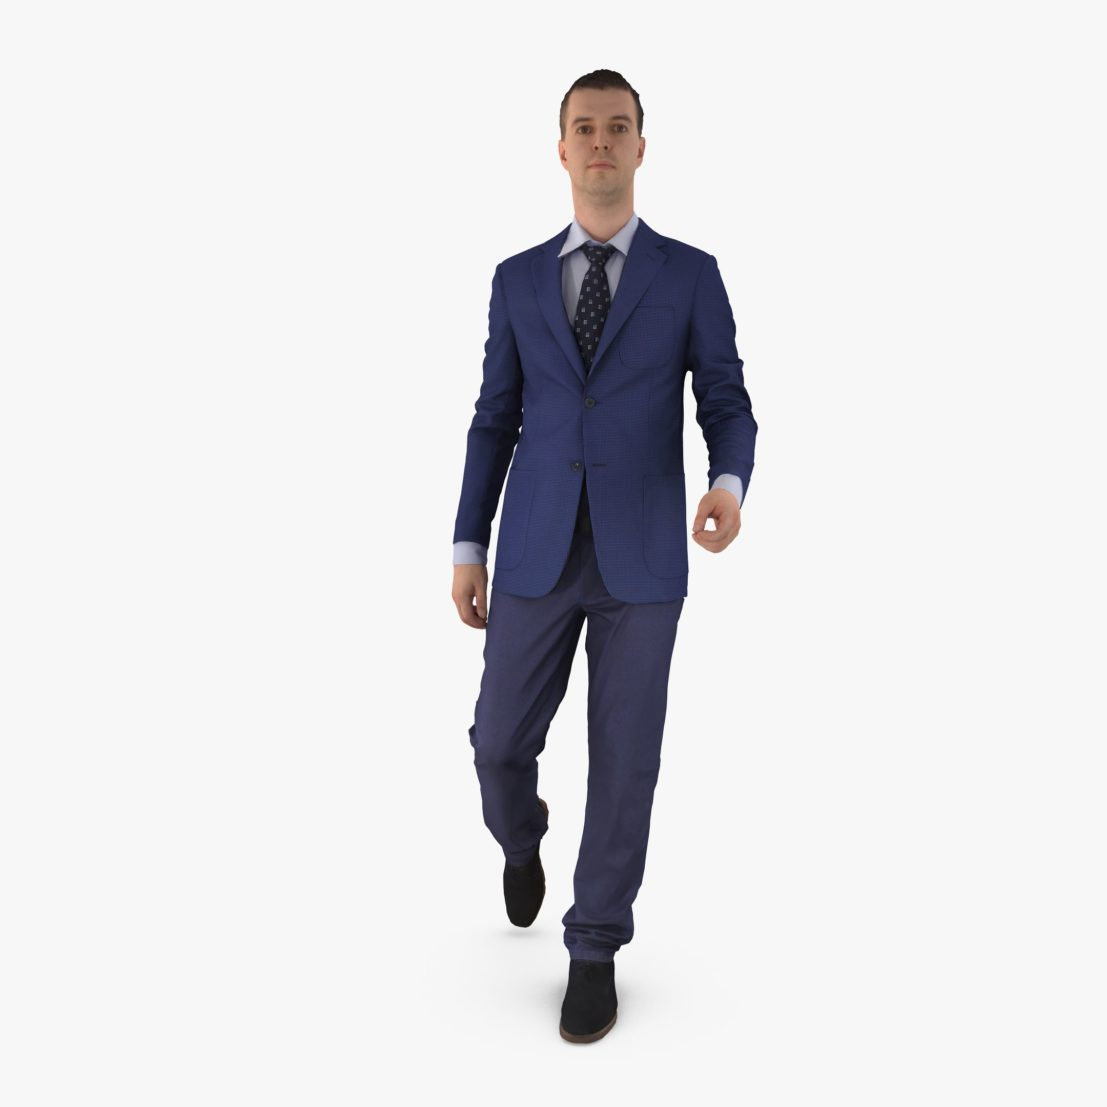 Businessman Walk 3D Model | 3DTree Scanning Studio